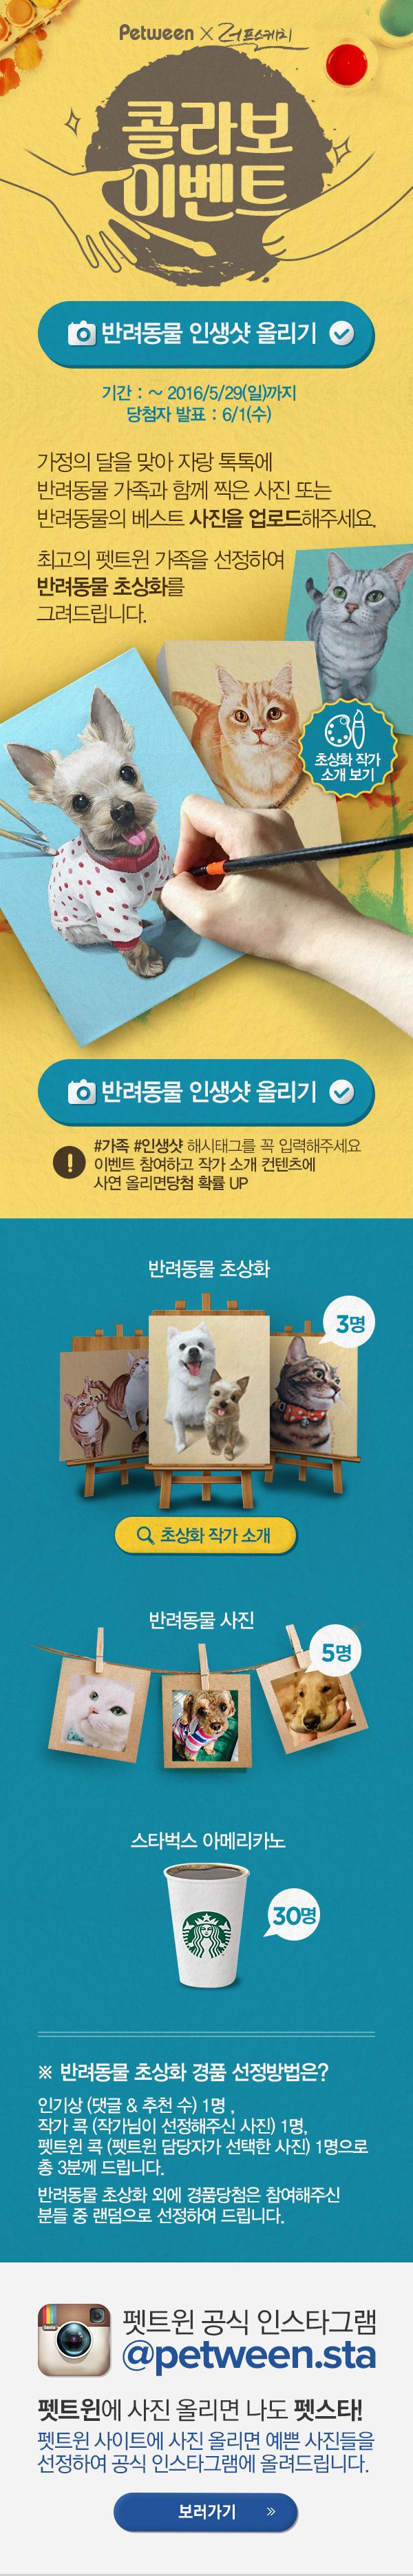 www.petween.co.kr... #Mobile #Mobile #Event #Petween #펫트윈